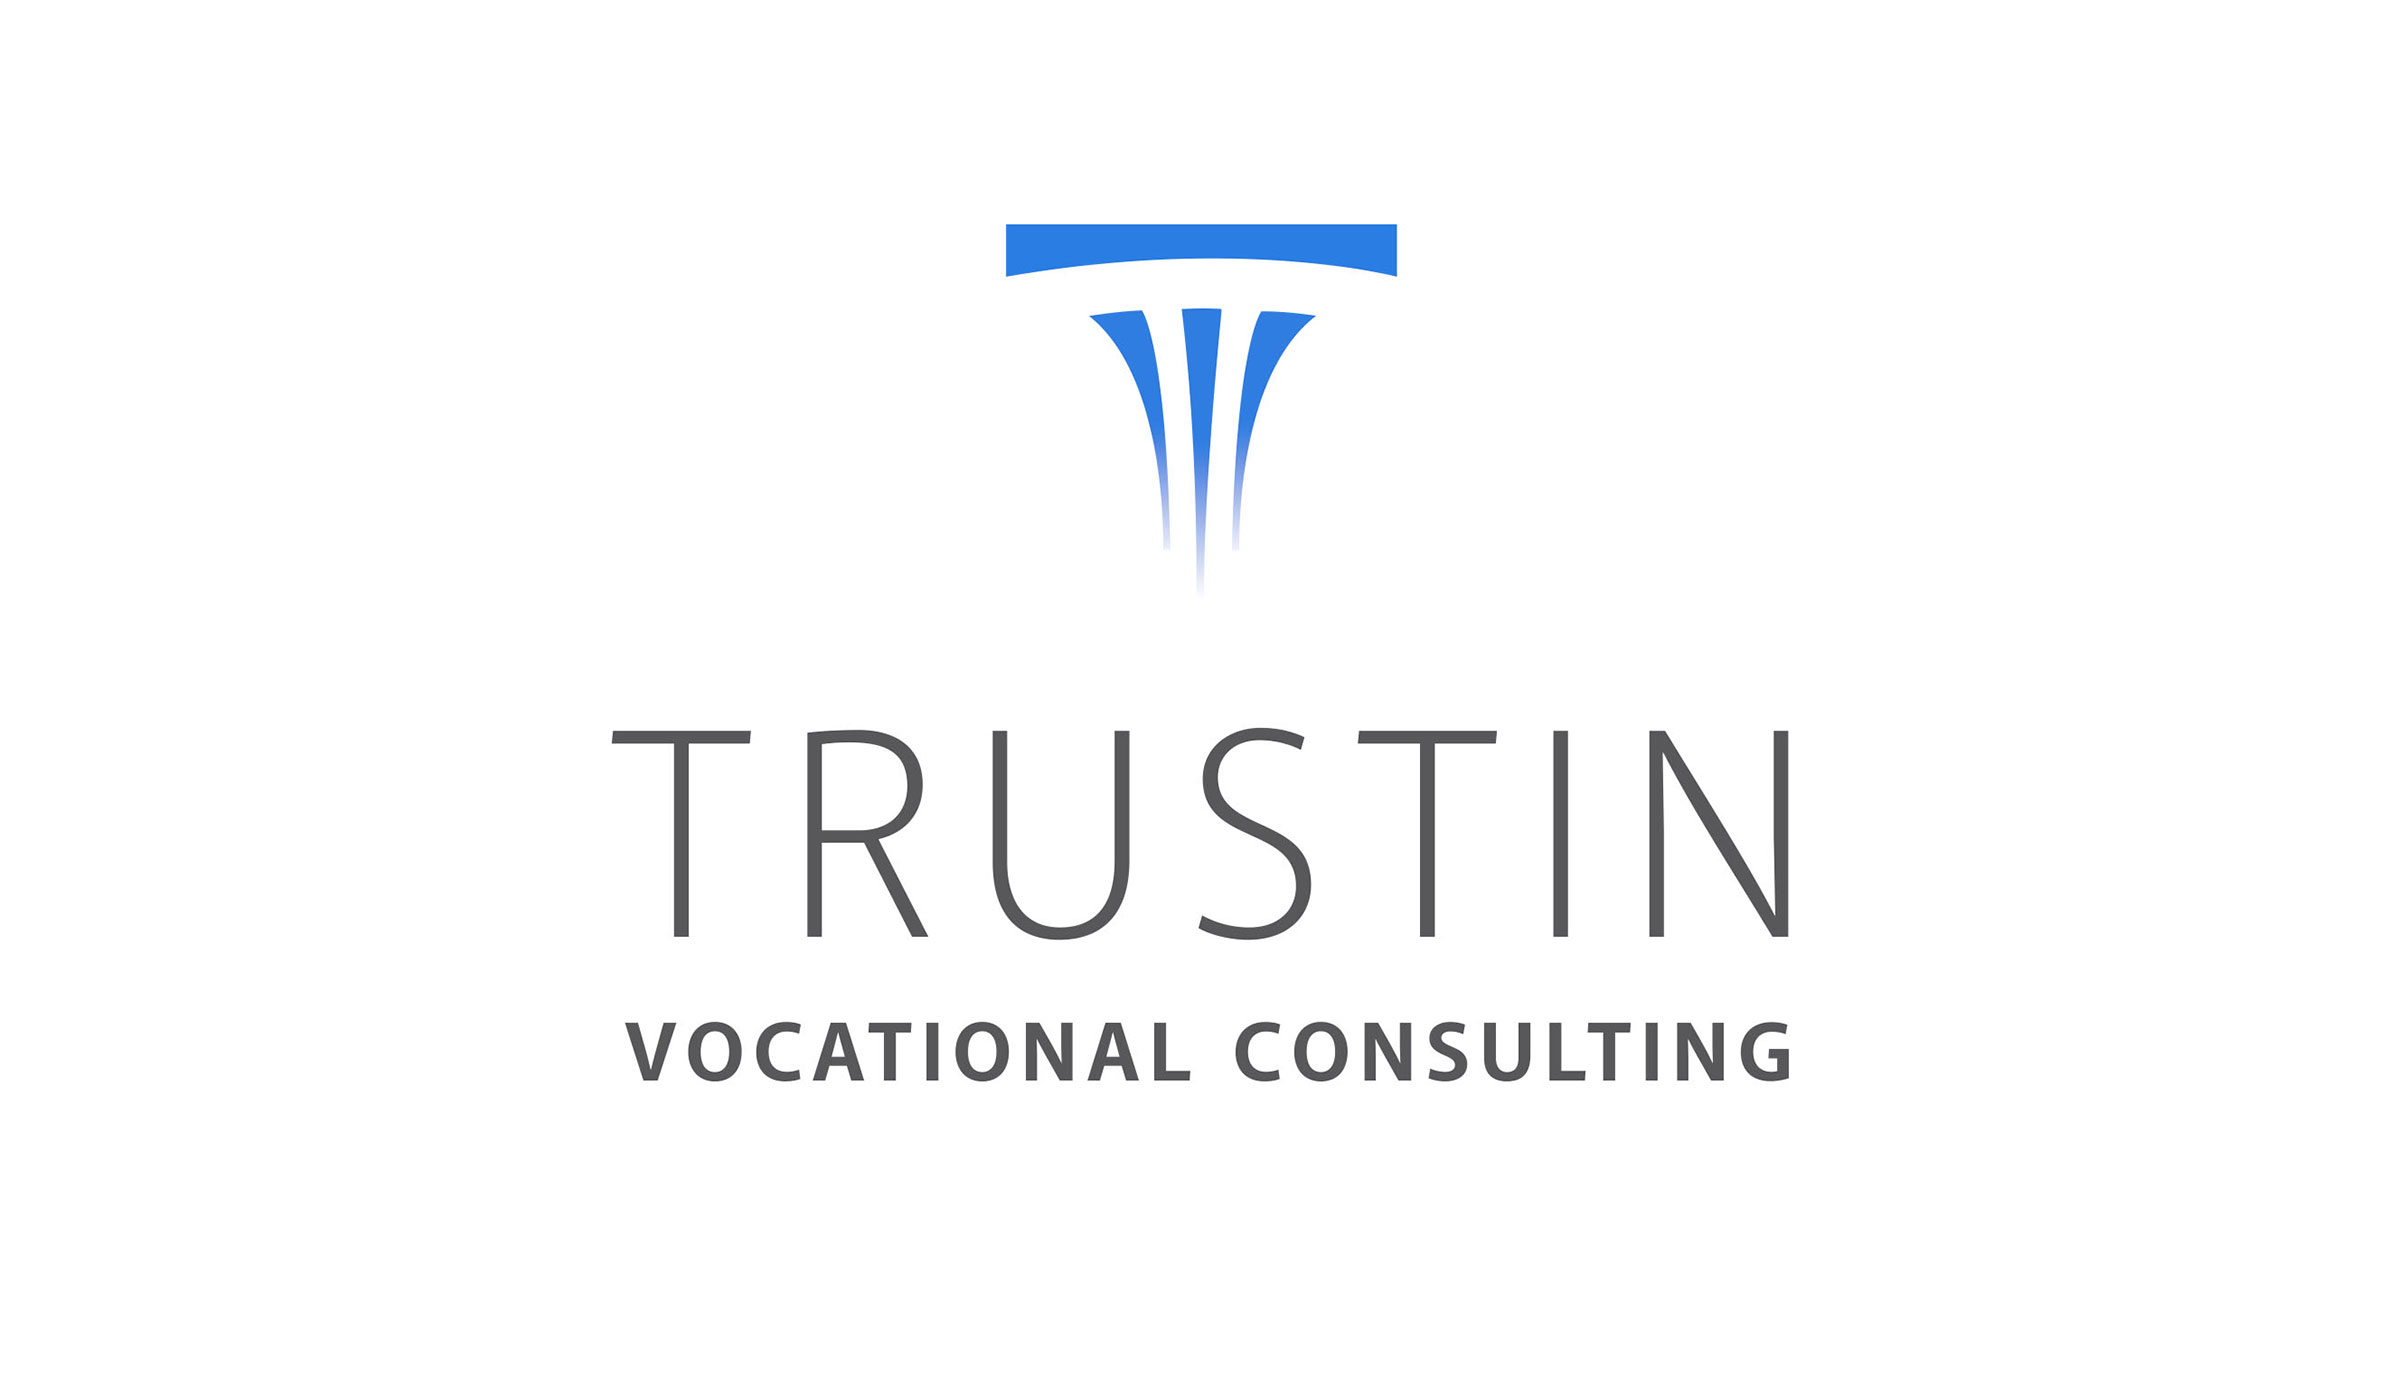 trustin-vocational-consulting-logo